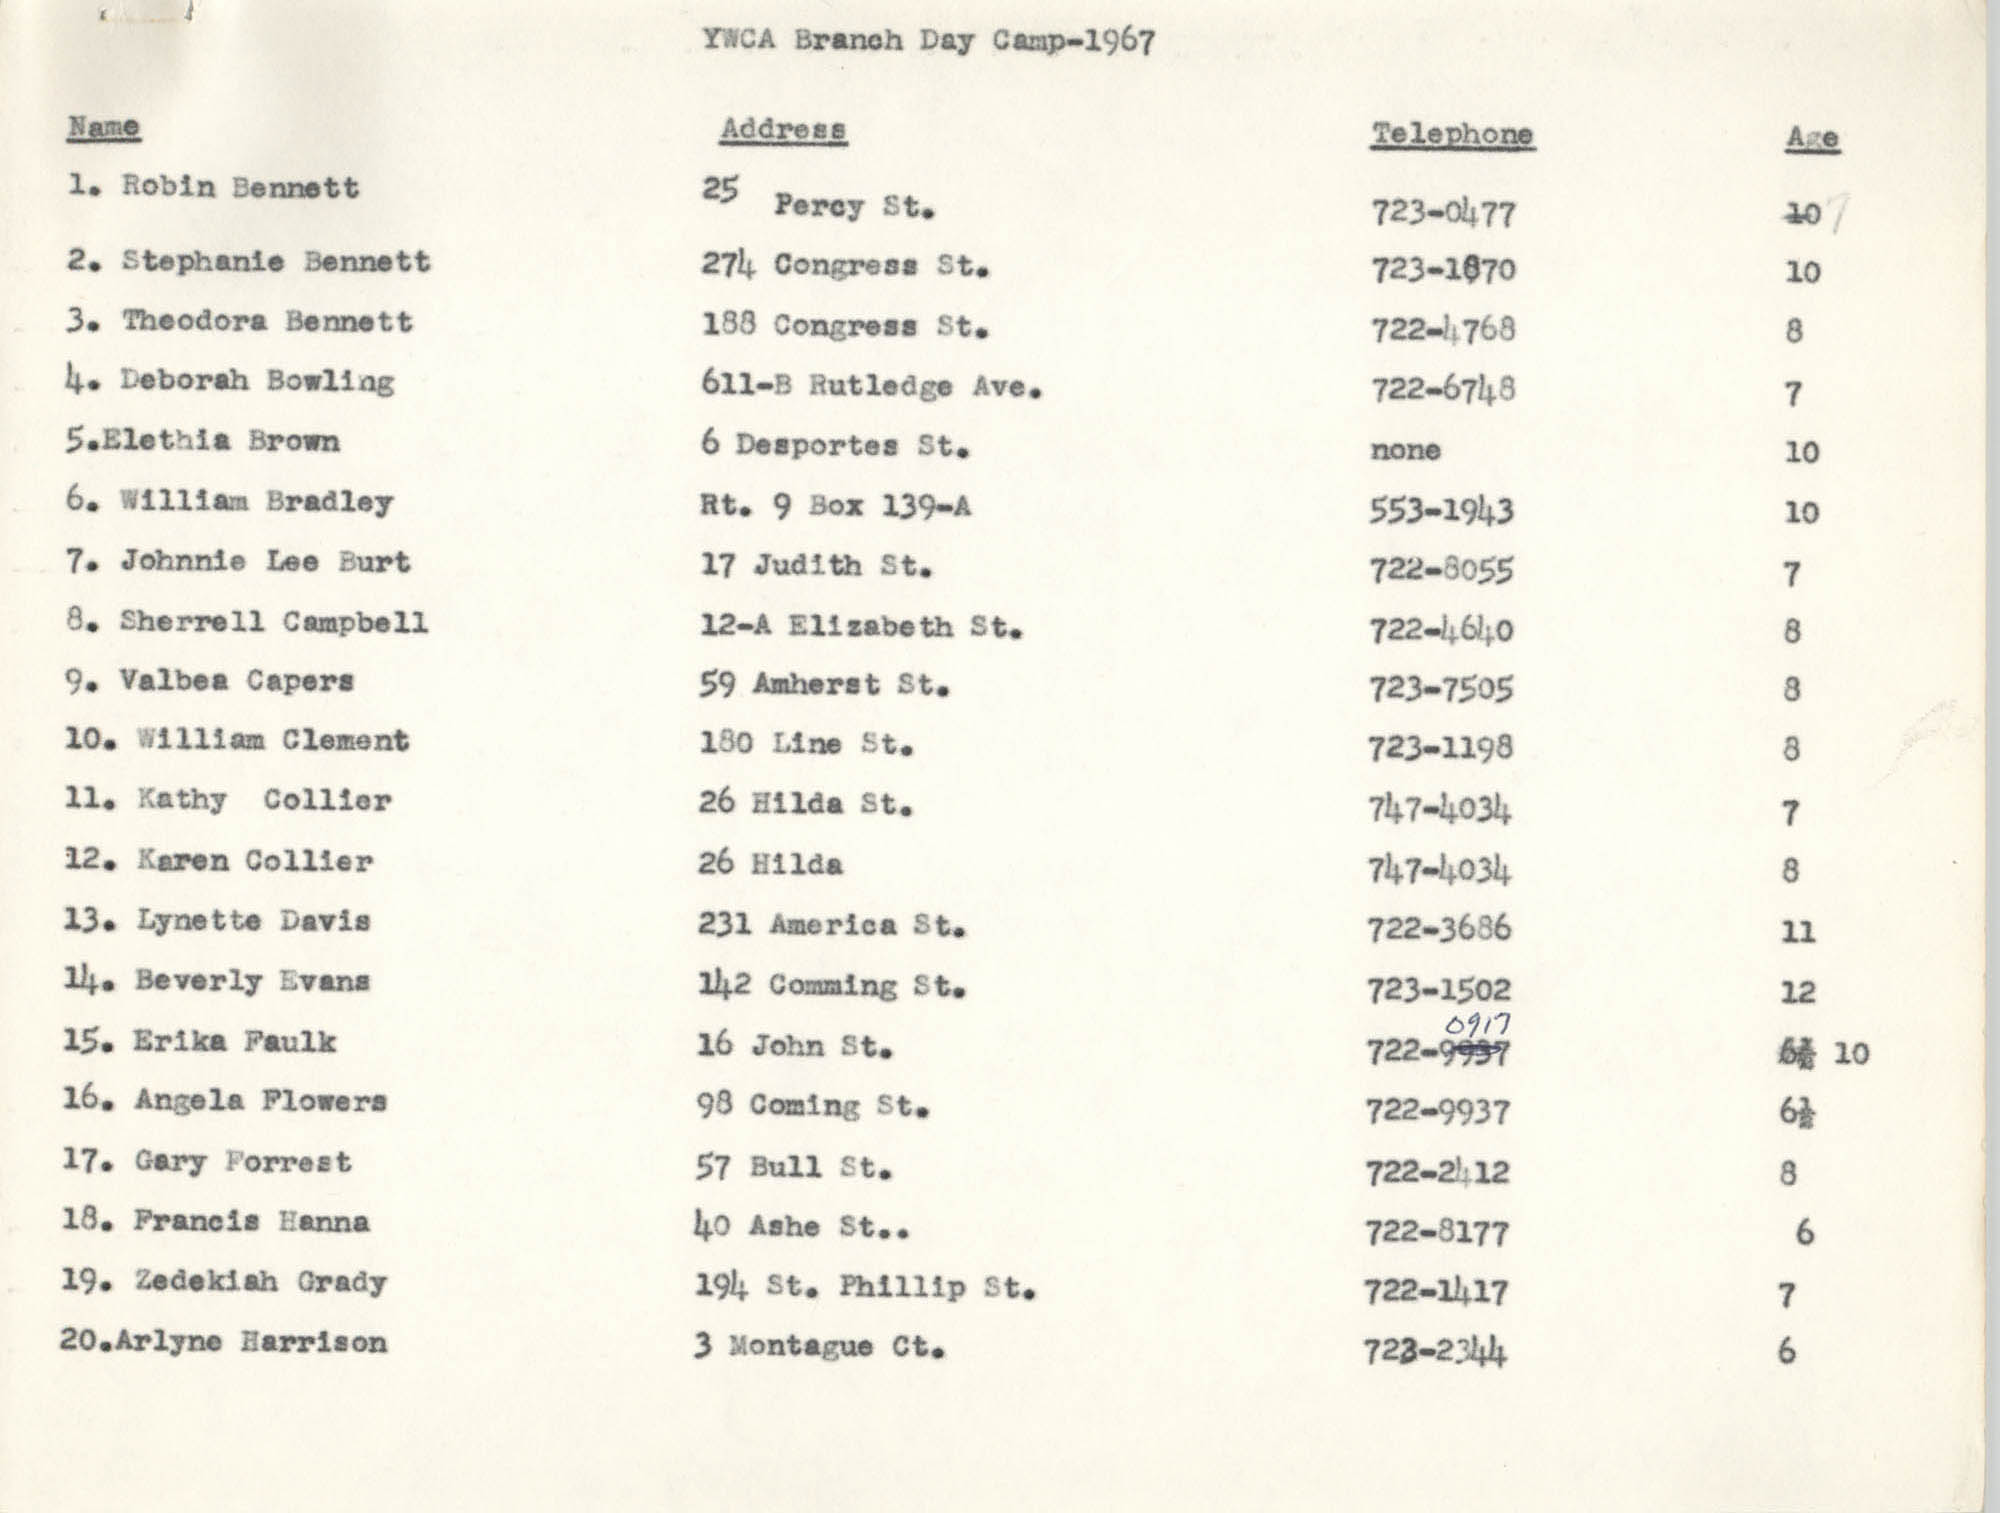 Coming Street Y.W.C.A. Day Camp 1967, Persons List, Page 1